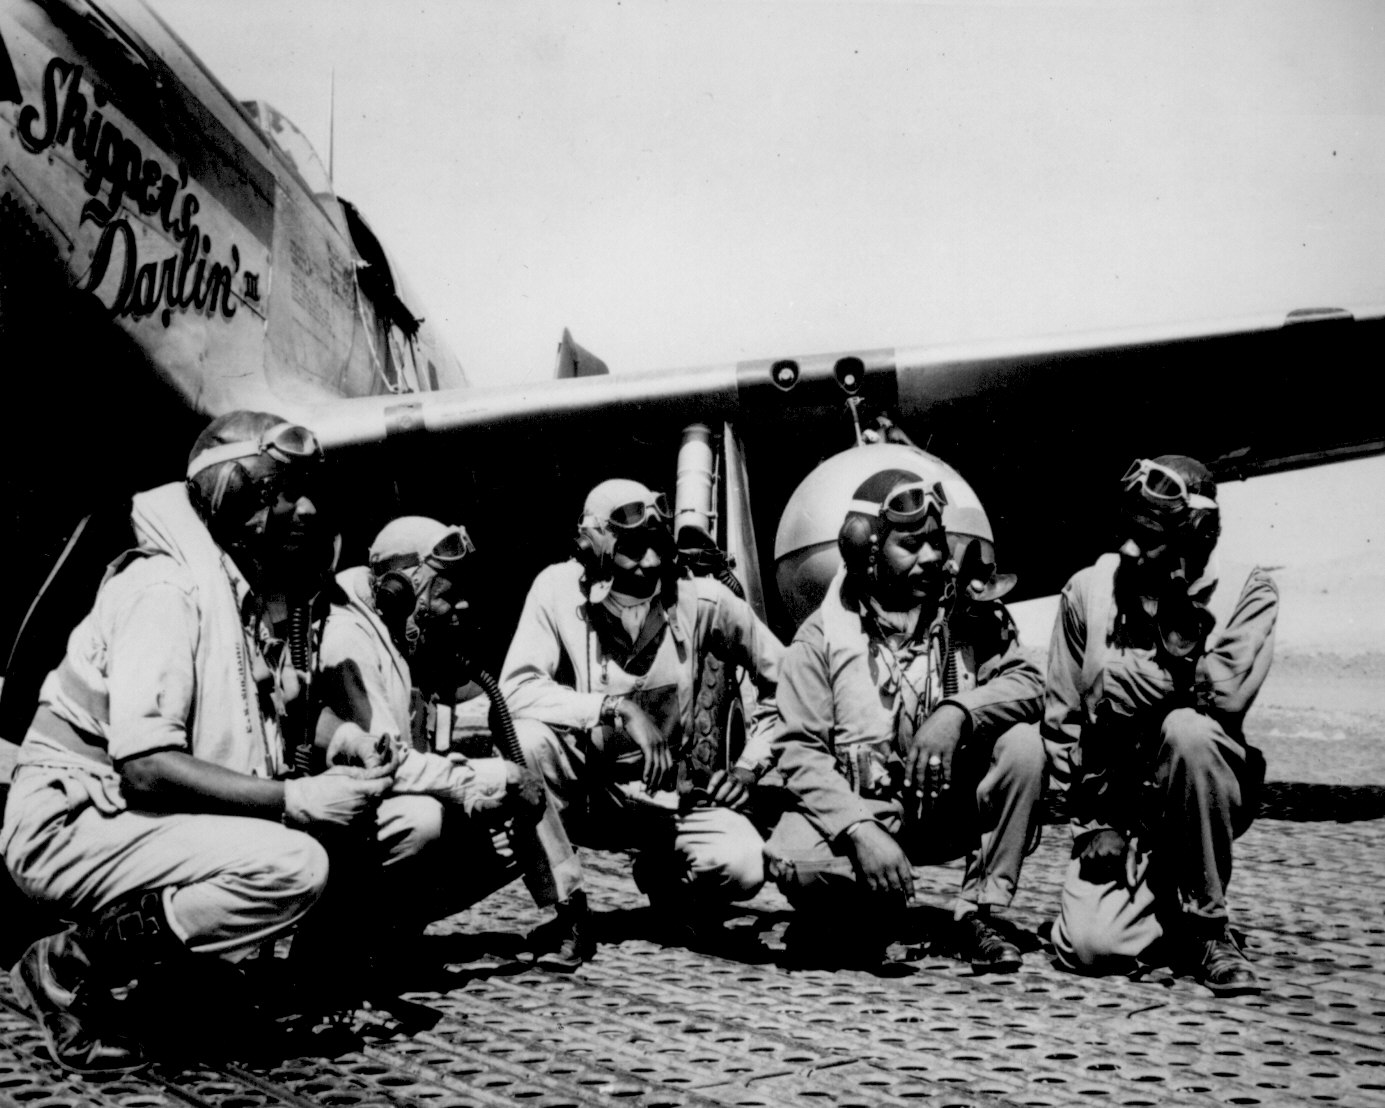 http://www.archives.gov/research/african-americans/ww2-pictures/images/african-americans-wwii-047.jpg